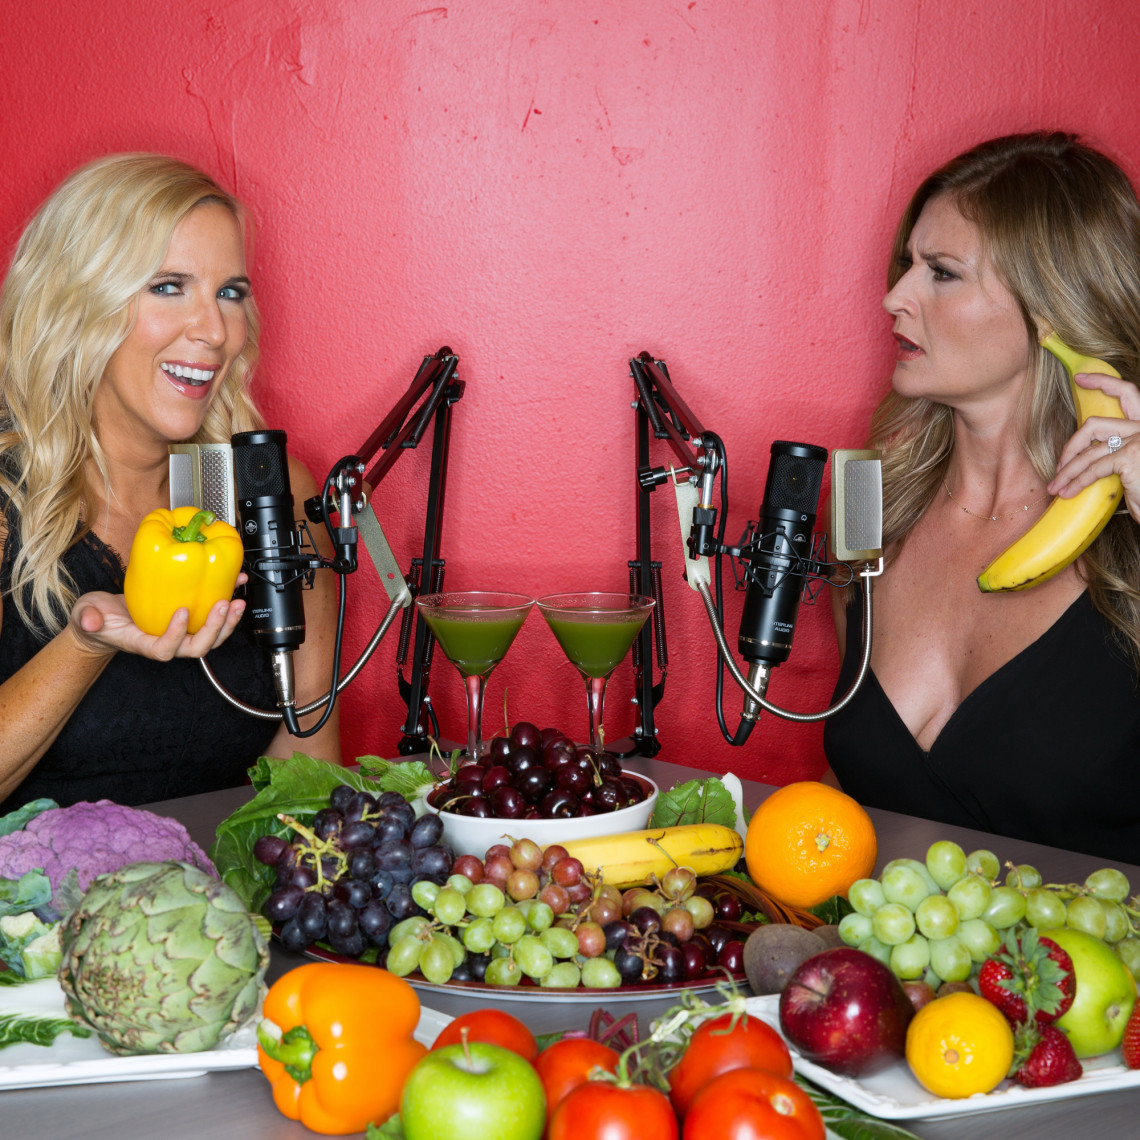 Allison Melody and Suzy Hardy answer your questions on this Q&A Thursday episode of The Food Heals Podcast!